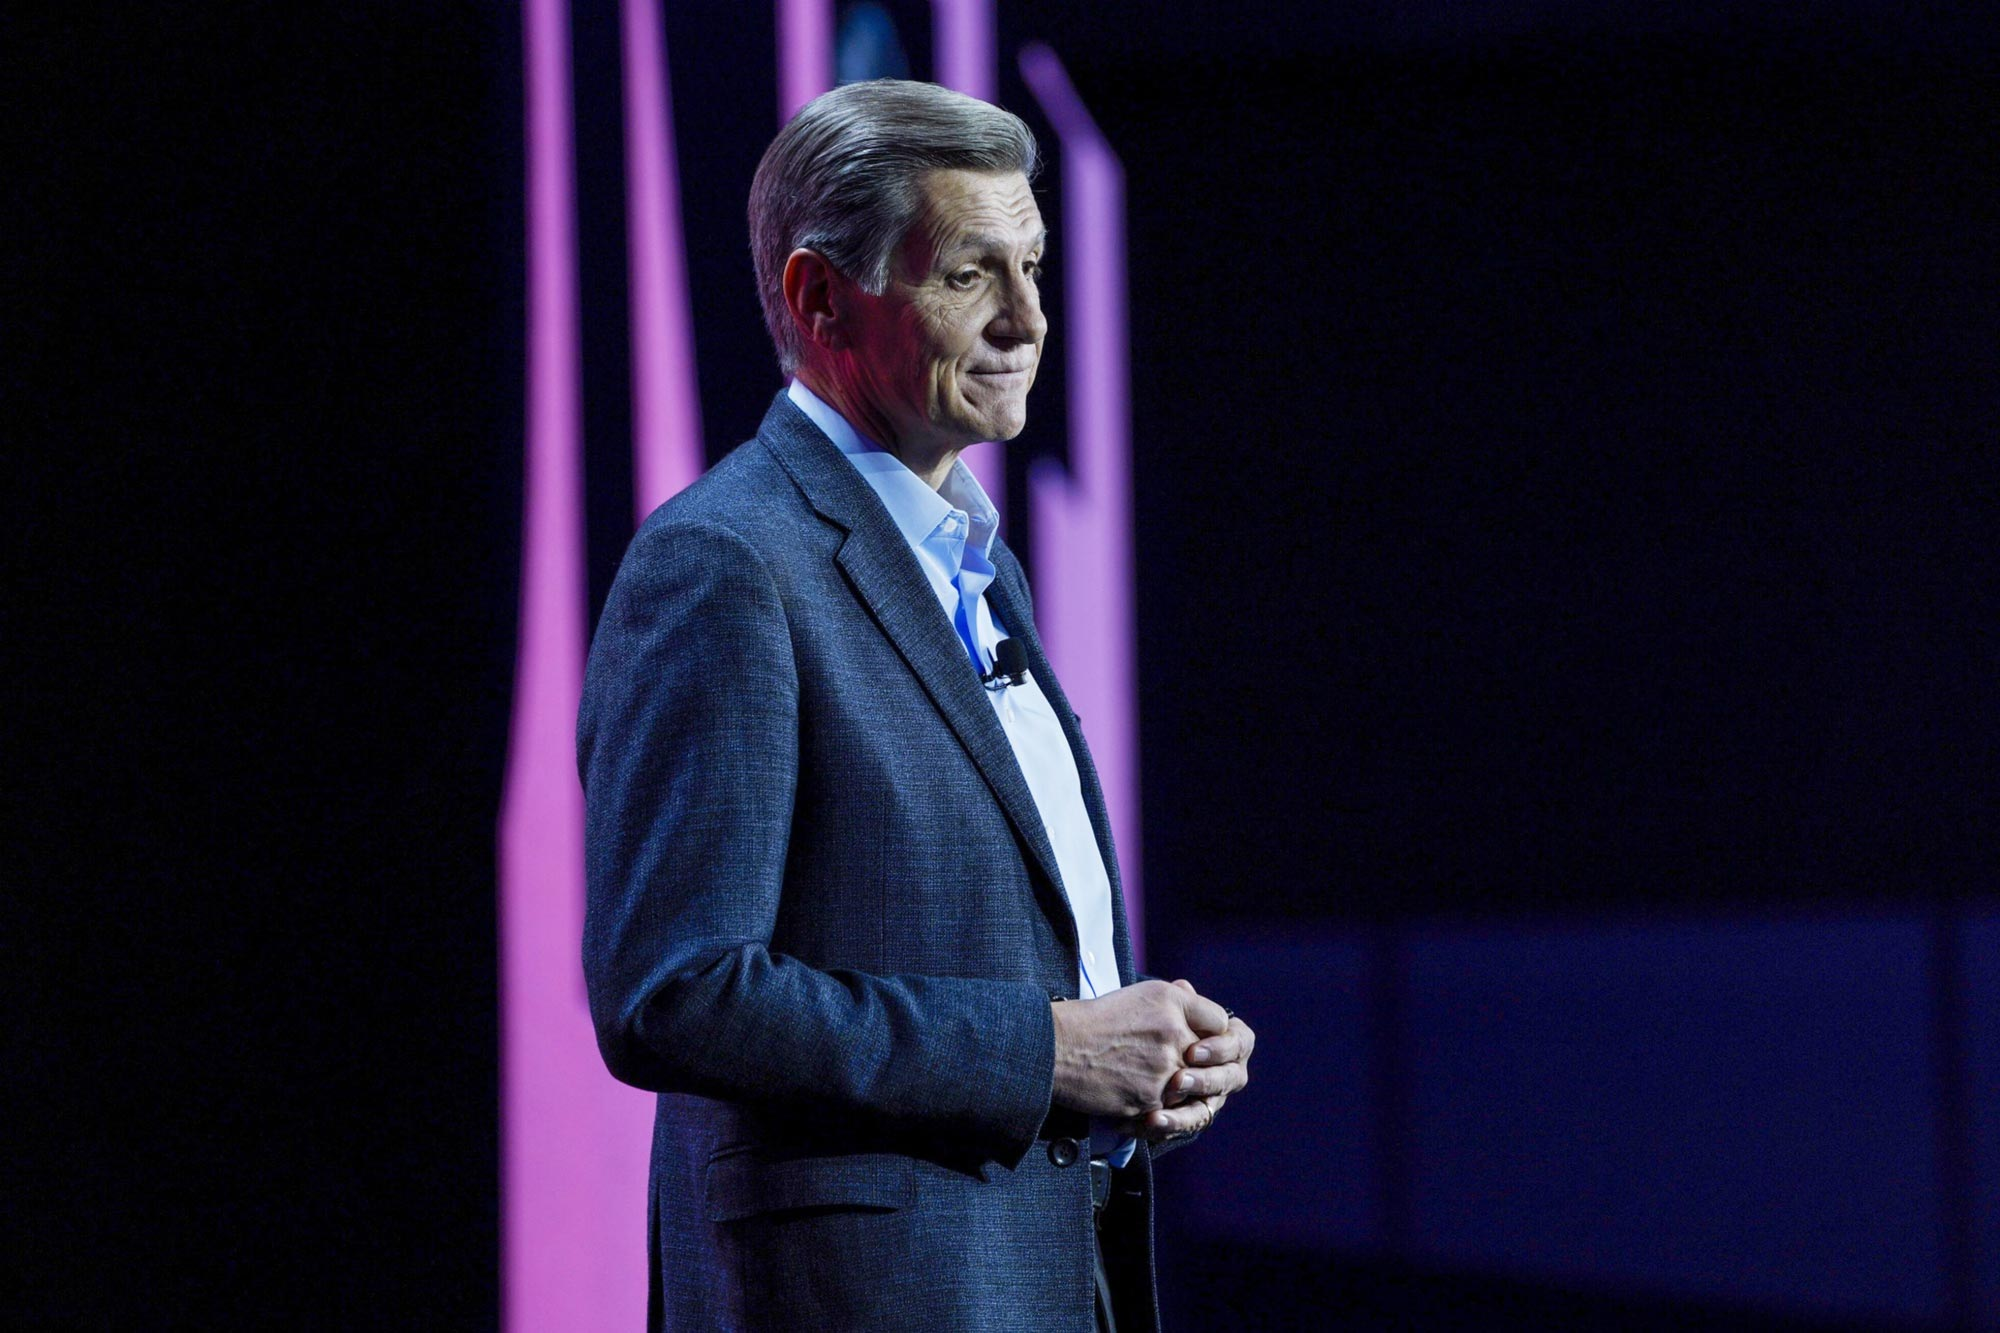 P&G strikes upfront ad deals directly with TV networks